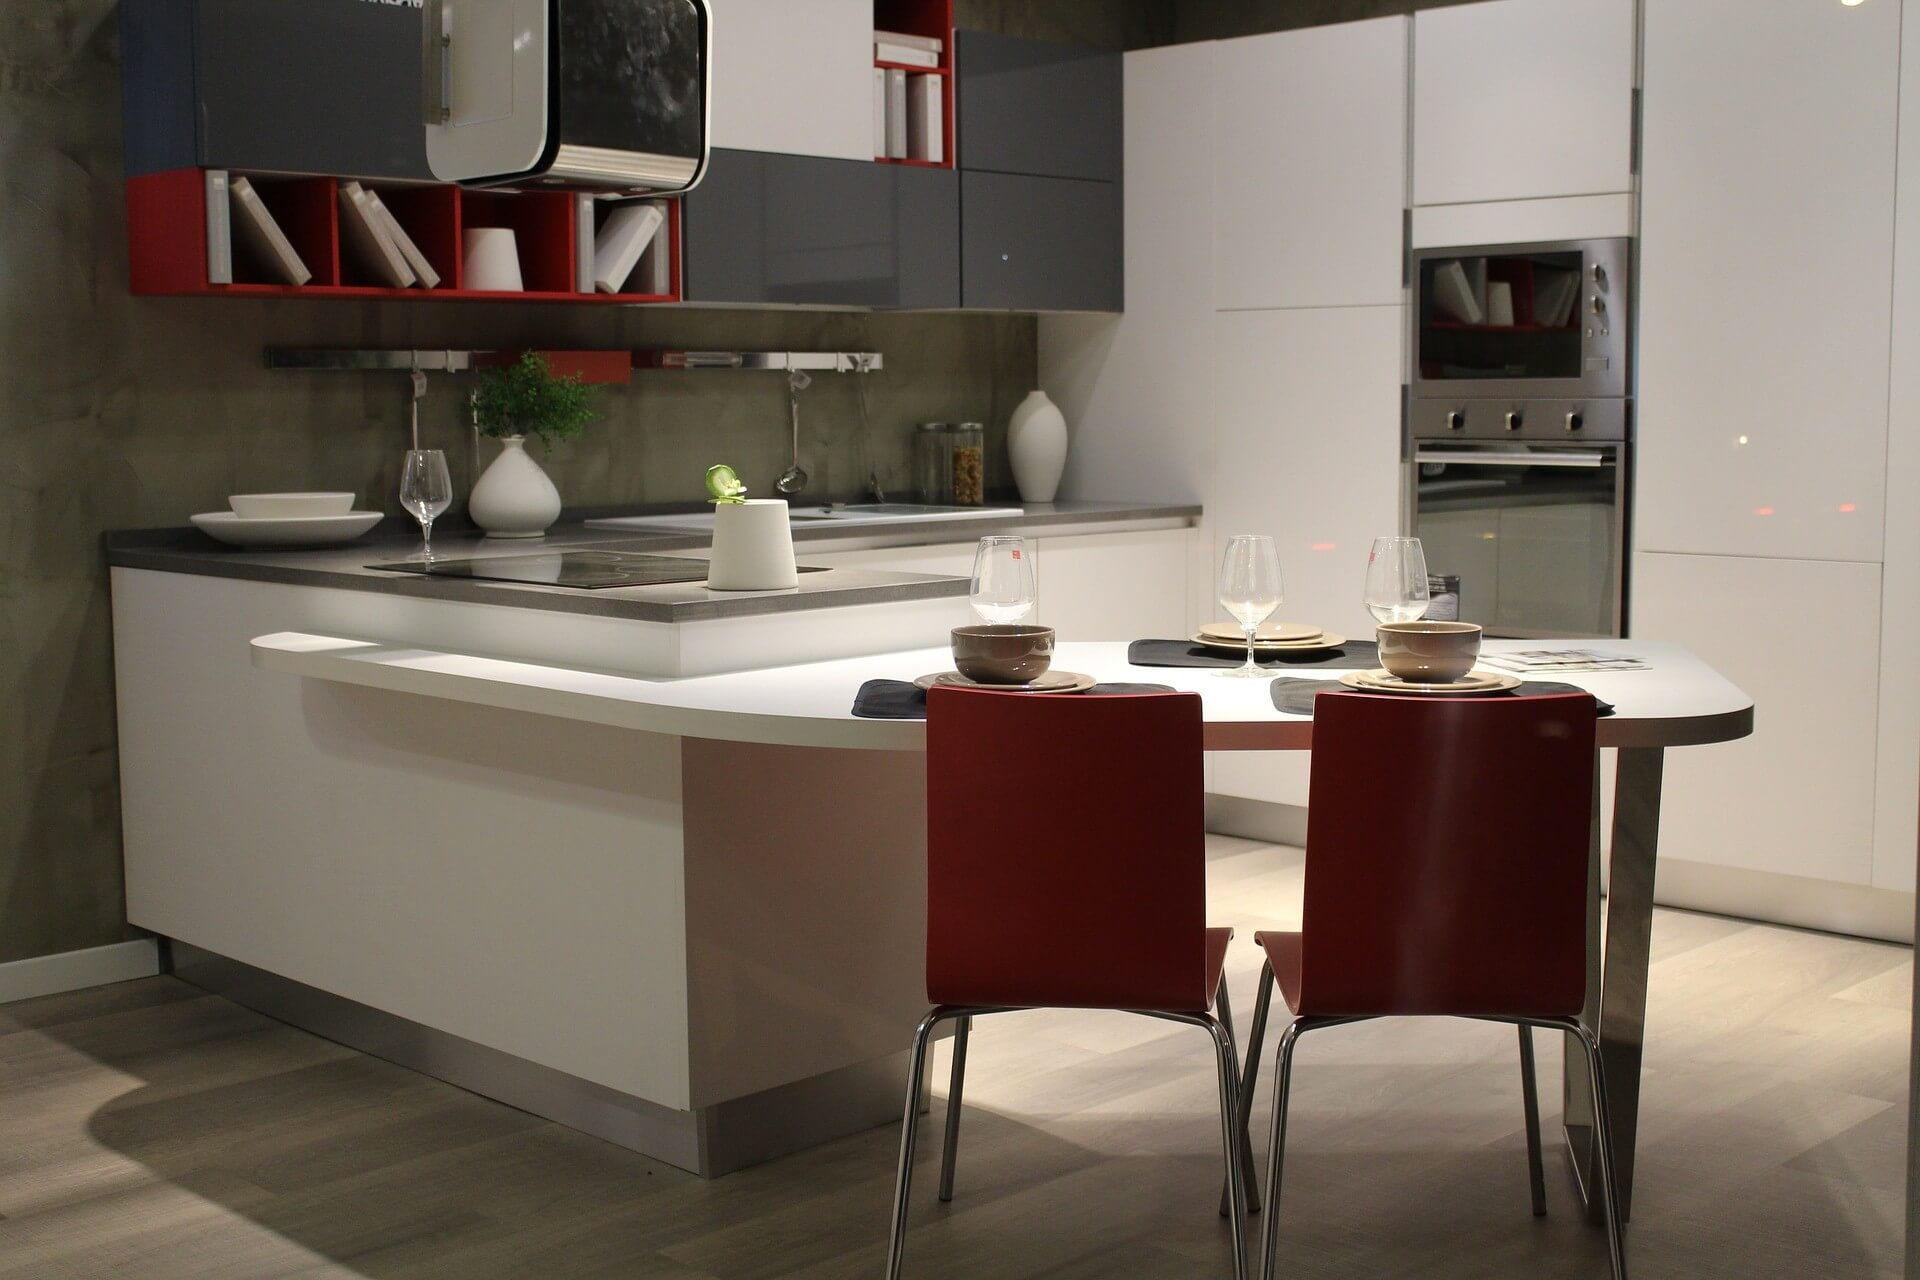 Minimalistic Practical Appartment Kitchen meant for a small family or couple